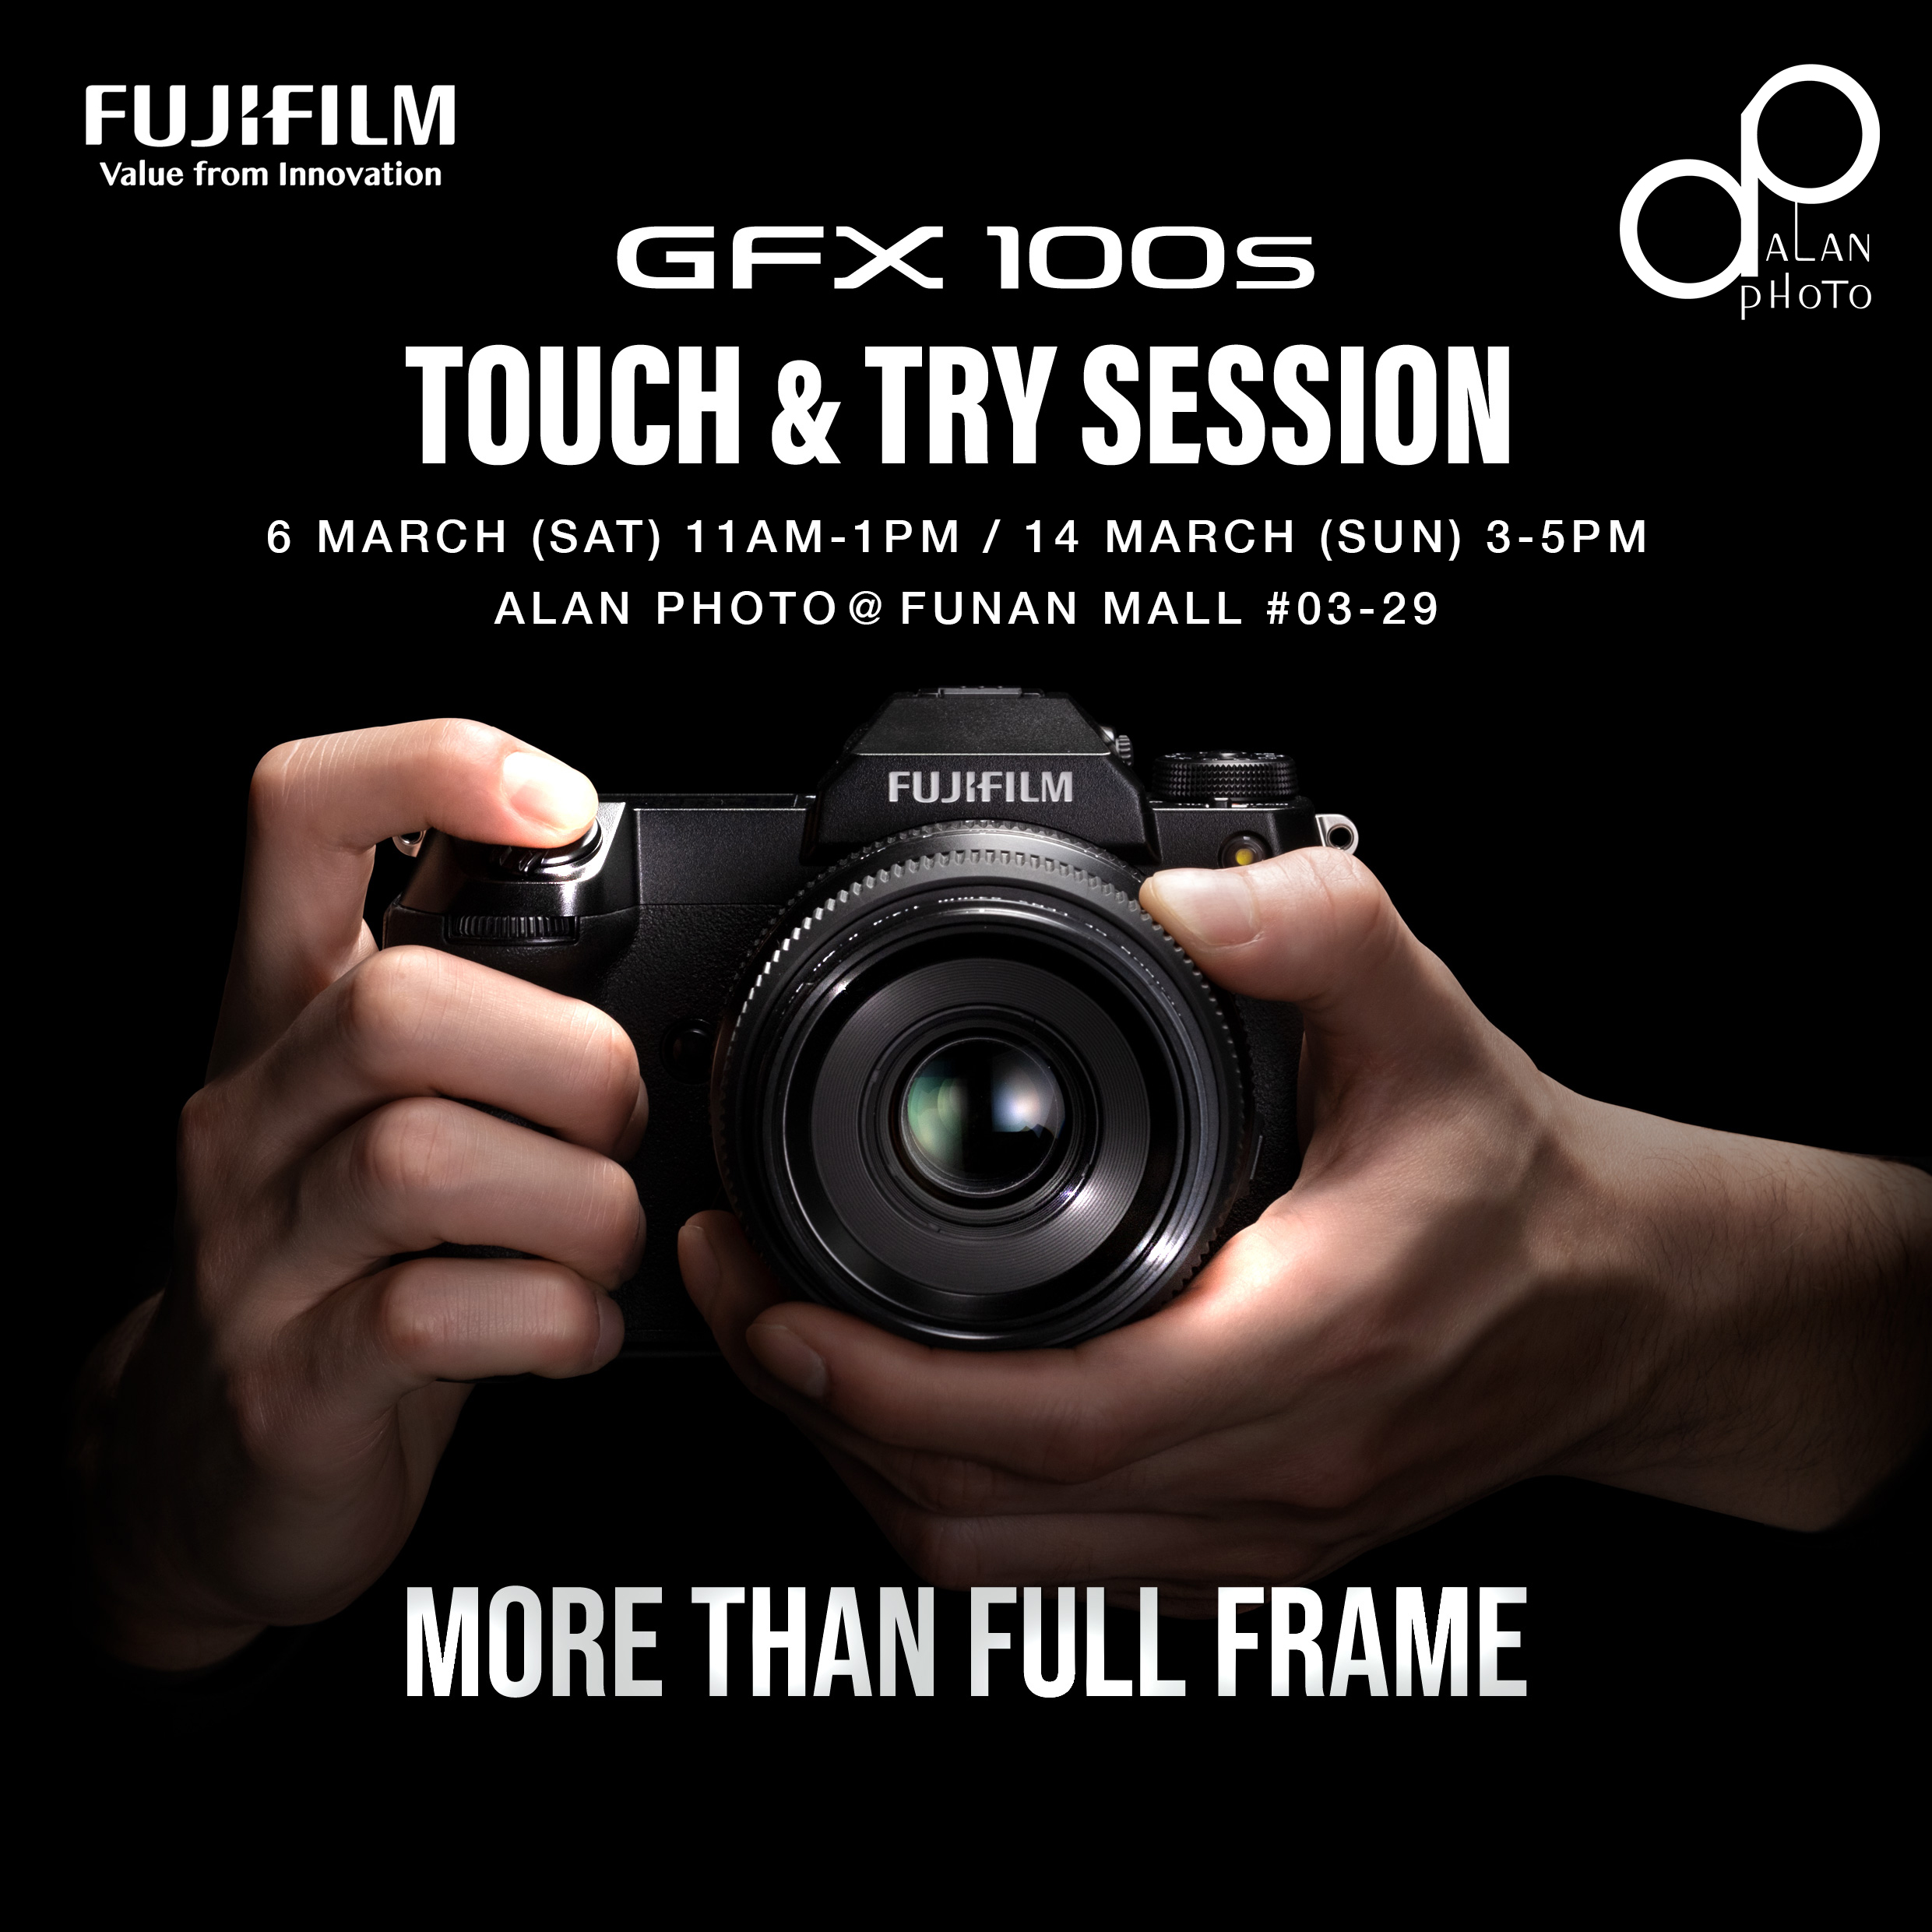 Fujifilm GFX100S | Touch & Try Session!